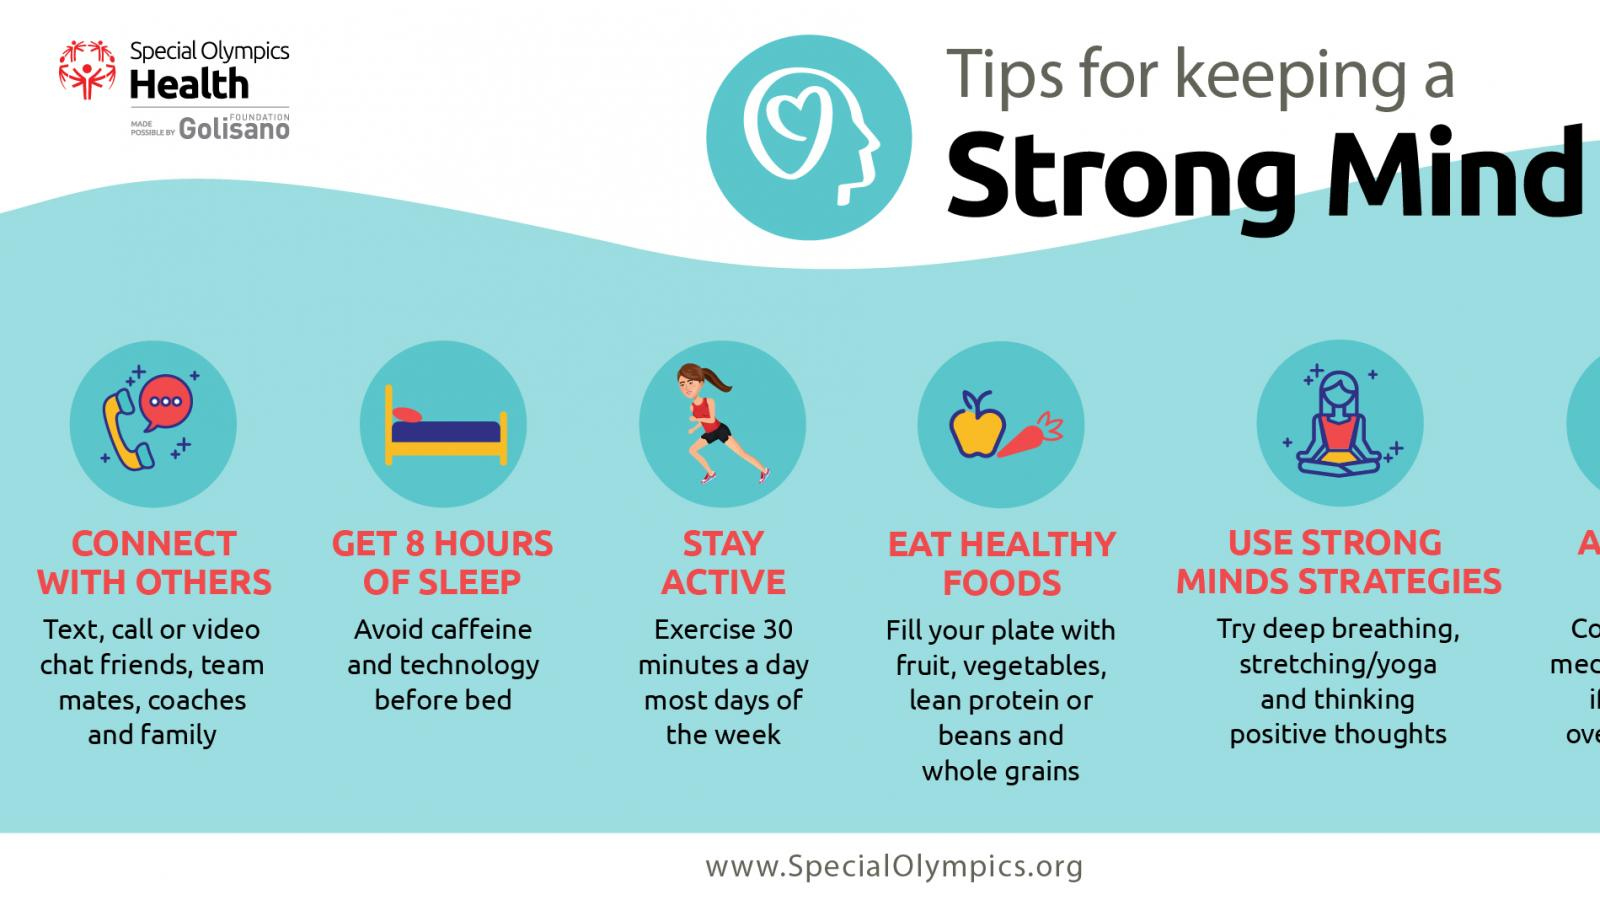 Tips for keeping Strong Minds